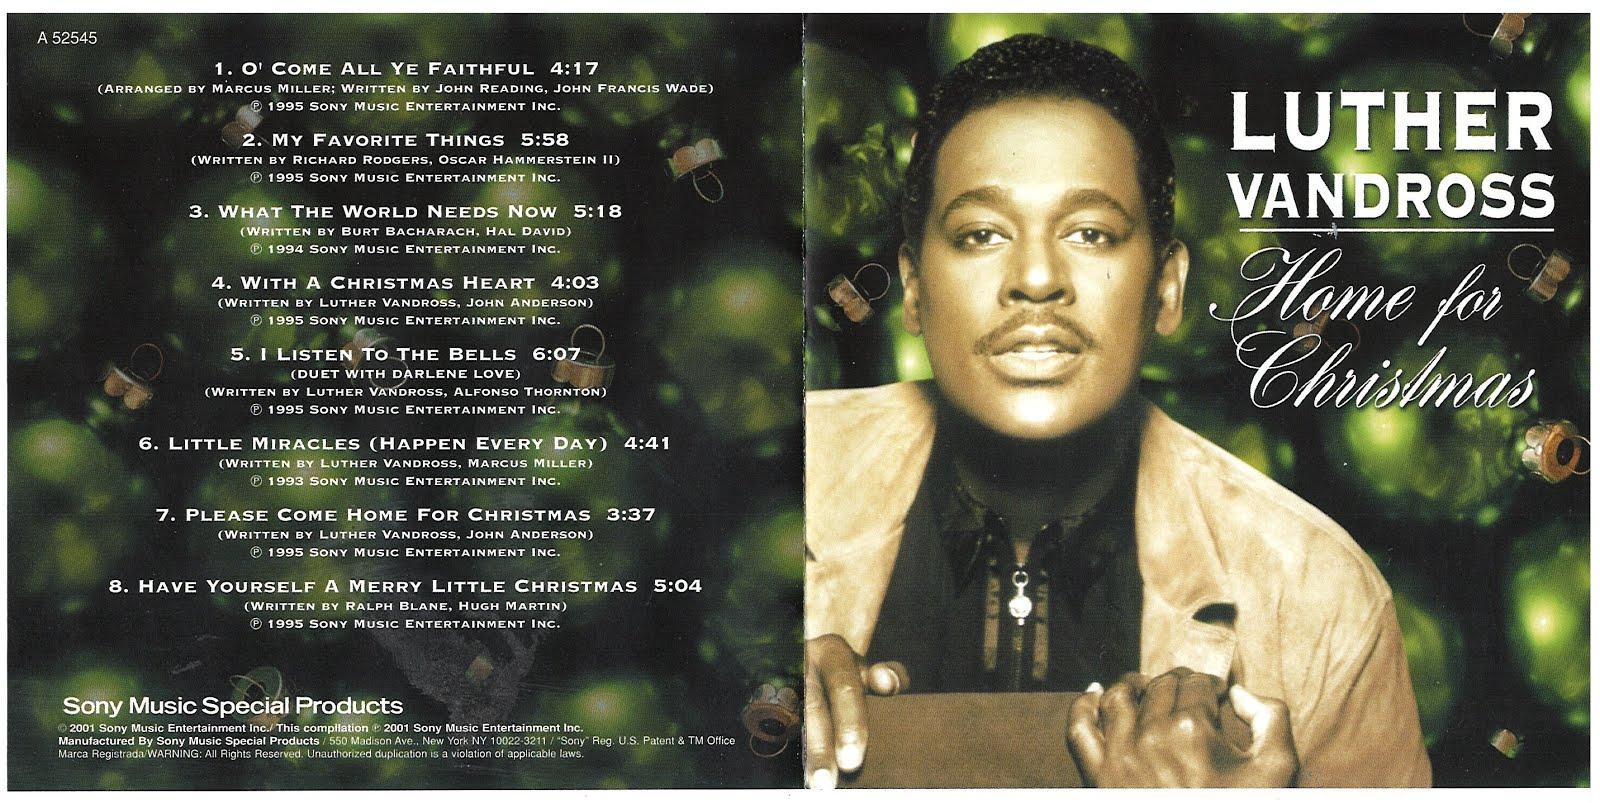 for luther vandross fans this really is a wonderful recording - Luther Vandross Christmas